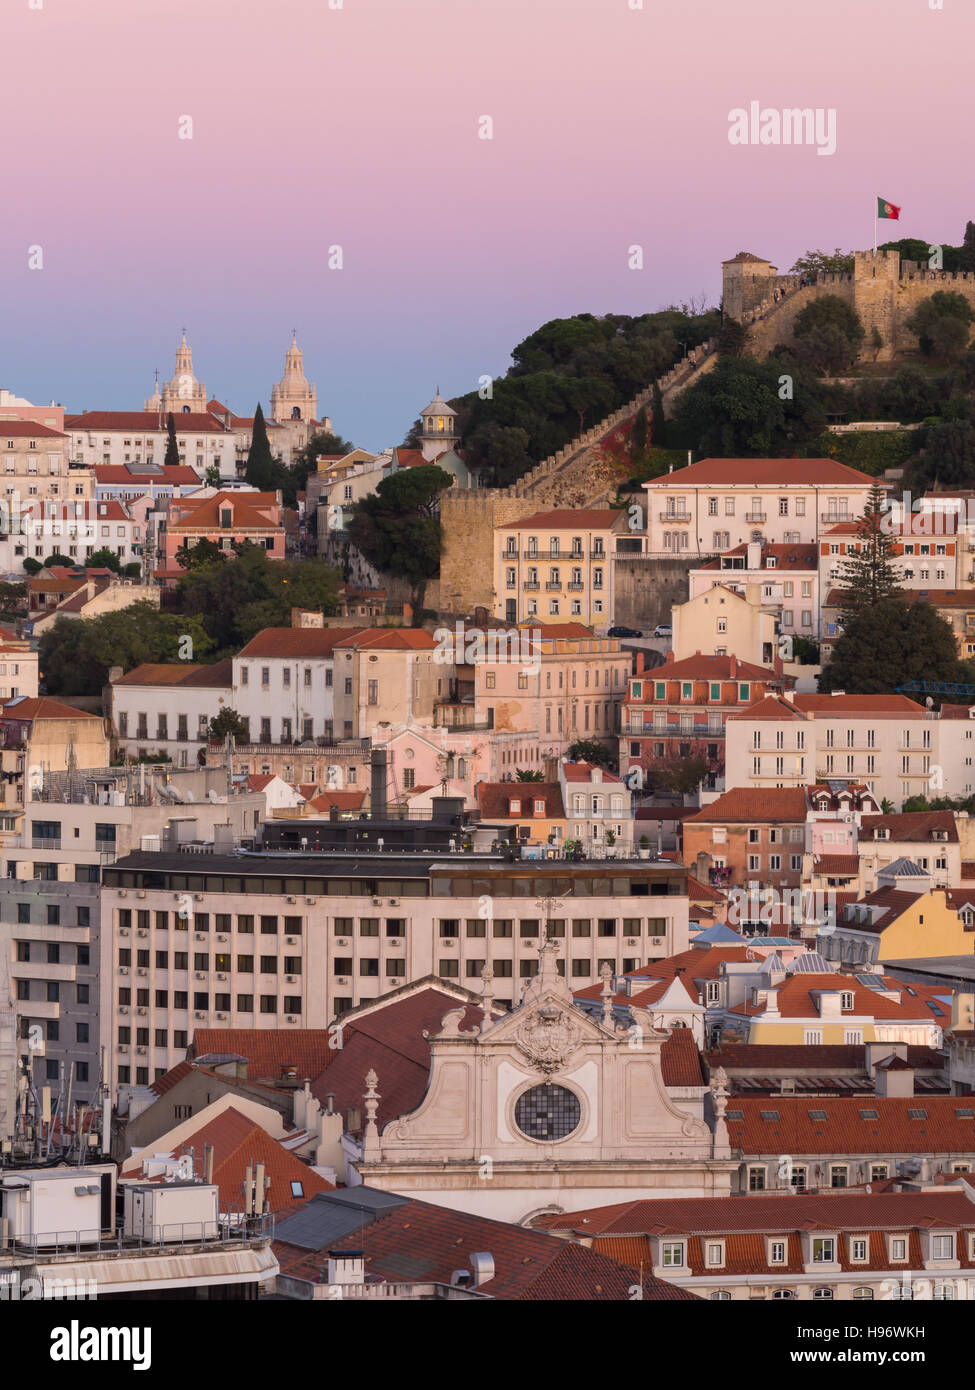 Cityscape of Lisbon, Portugal, with the Sao Jorge Castle seen from Miradouro Sao Pedro de Alcantara at night. - Stock Image